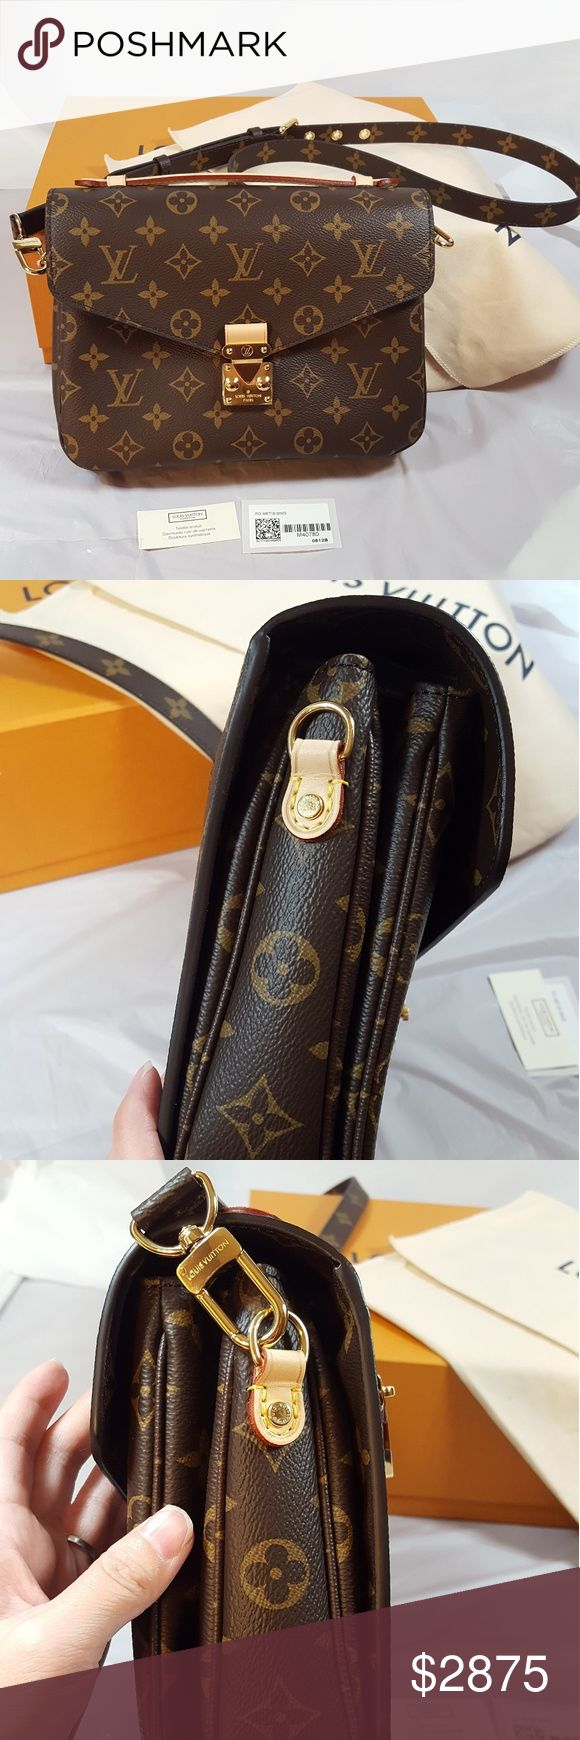 brand new authentic Louis Vuitton pochette metis Brand new authentic Louis Vuitton Pochett Metis. The plastic wrap still on the front gold S-lock. Comes with box, dust bag, tags, shopping bag. I bought the bag myself directly from LV store.  Bag is Made in Italy,  datecode is PL4197.  NOTE: Price is firm due to how hard is to locate this bag, this bag is always sold out at the store and online, plus Posh fee. If you don't like the price,  it's ok, please move on.  No need for rude comments…